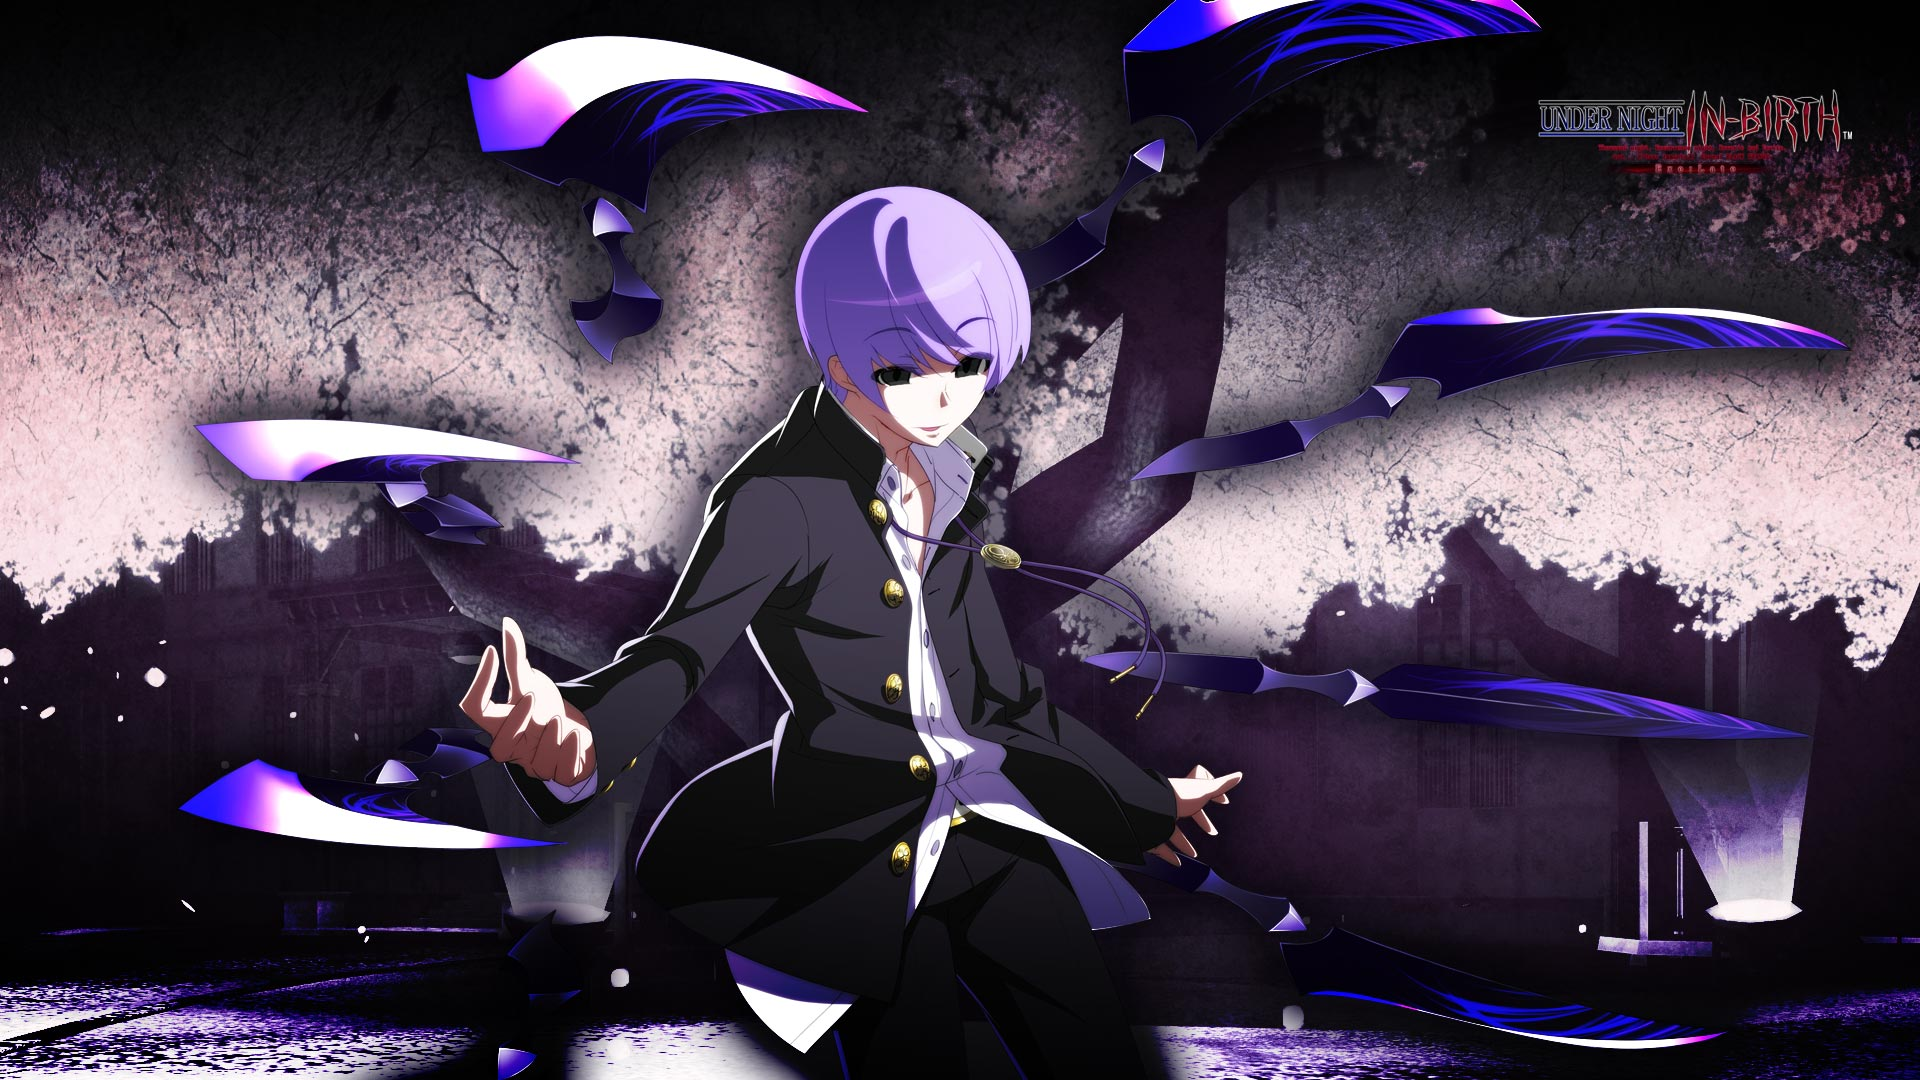 Showcase Under Night In Birth Exe Late